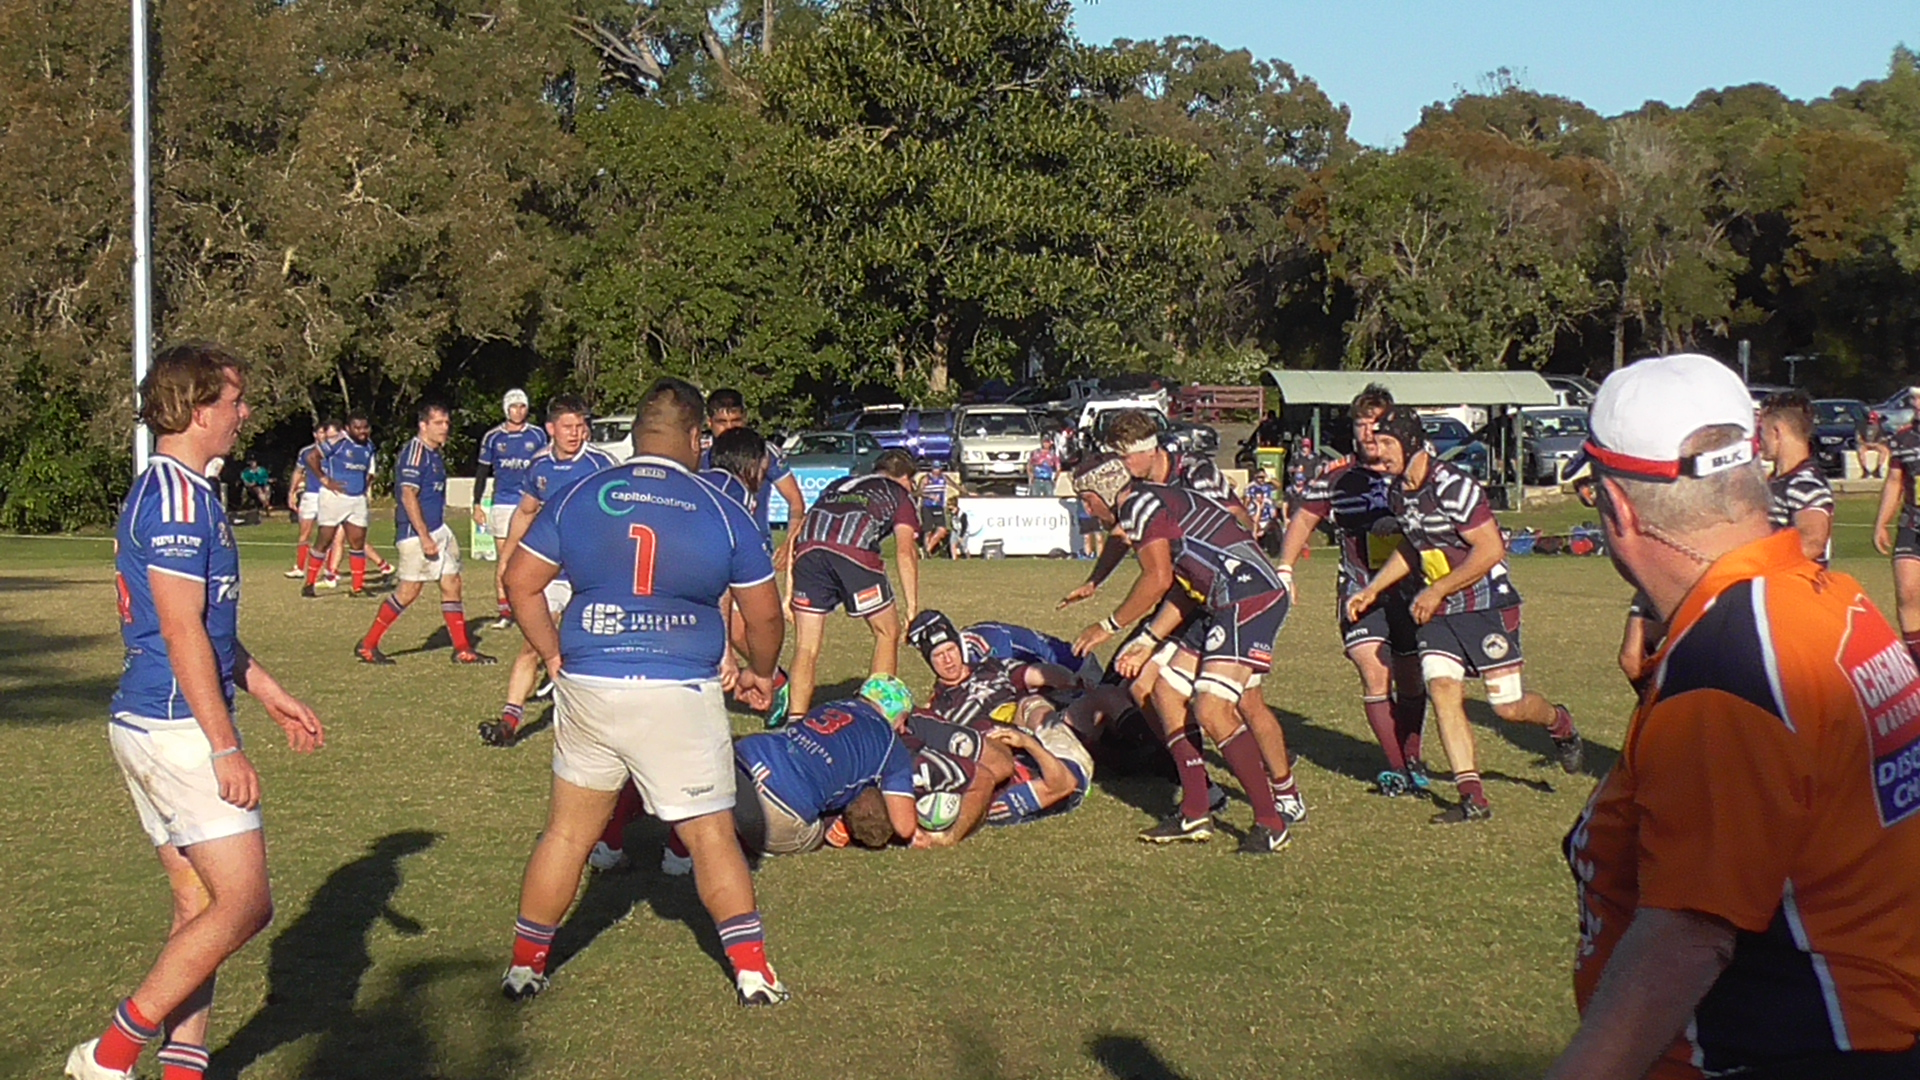 Finals spots decided in Coast rugby